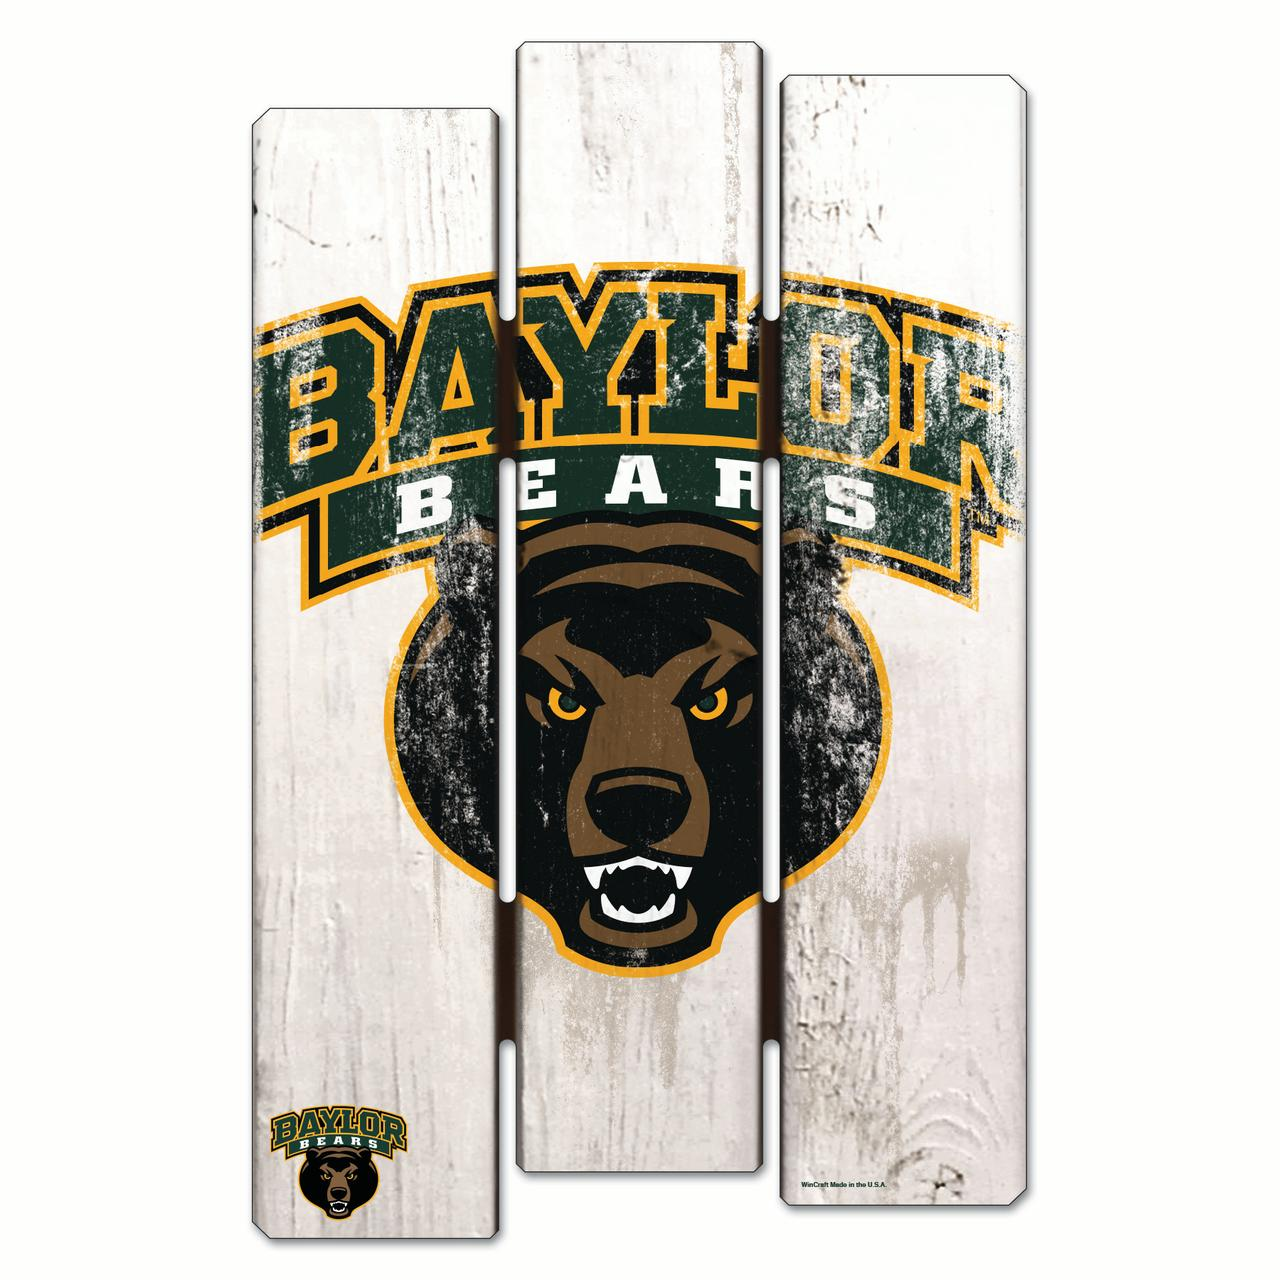 "Baylor Bears Official NCAA 11"" x 17"" Sign 11x17 Wood by Wincraft 199621"